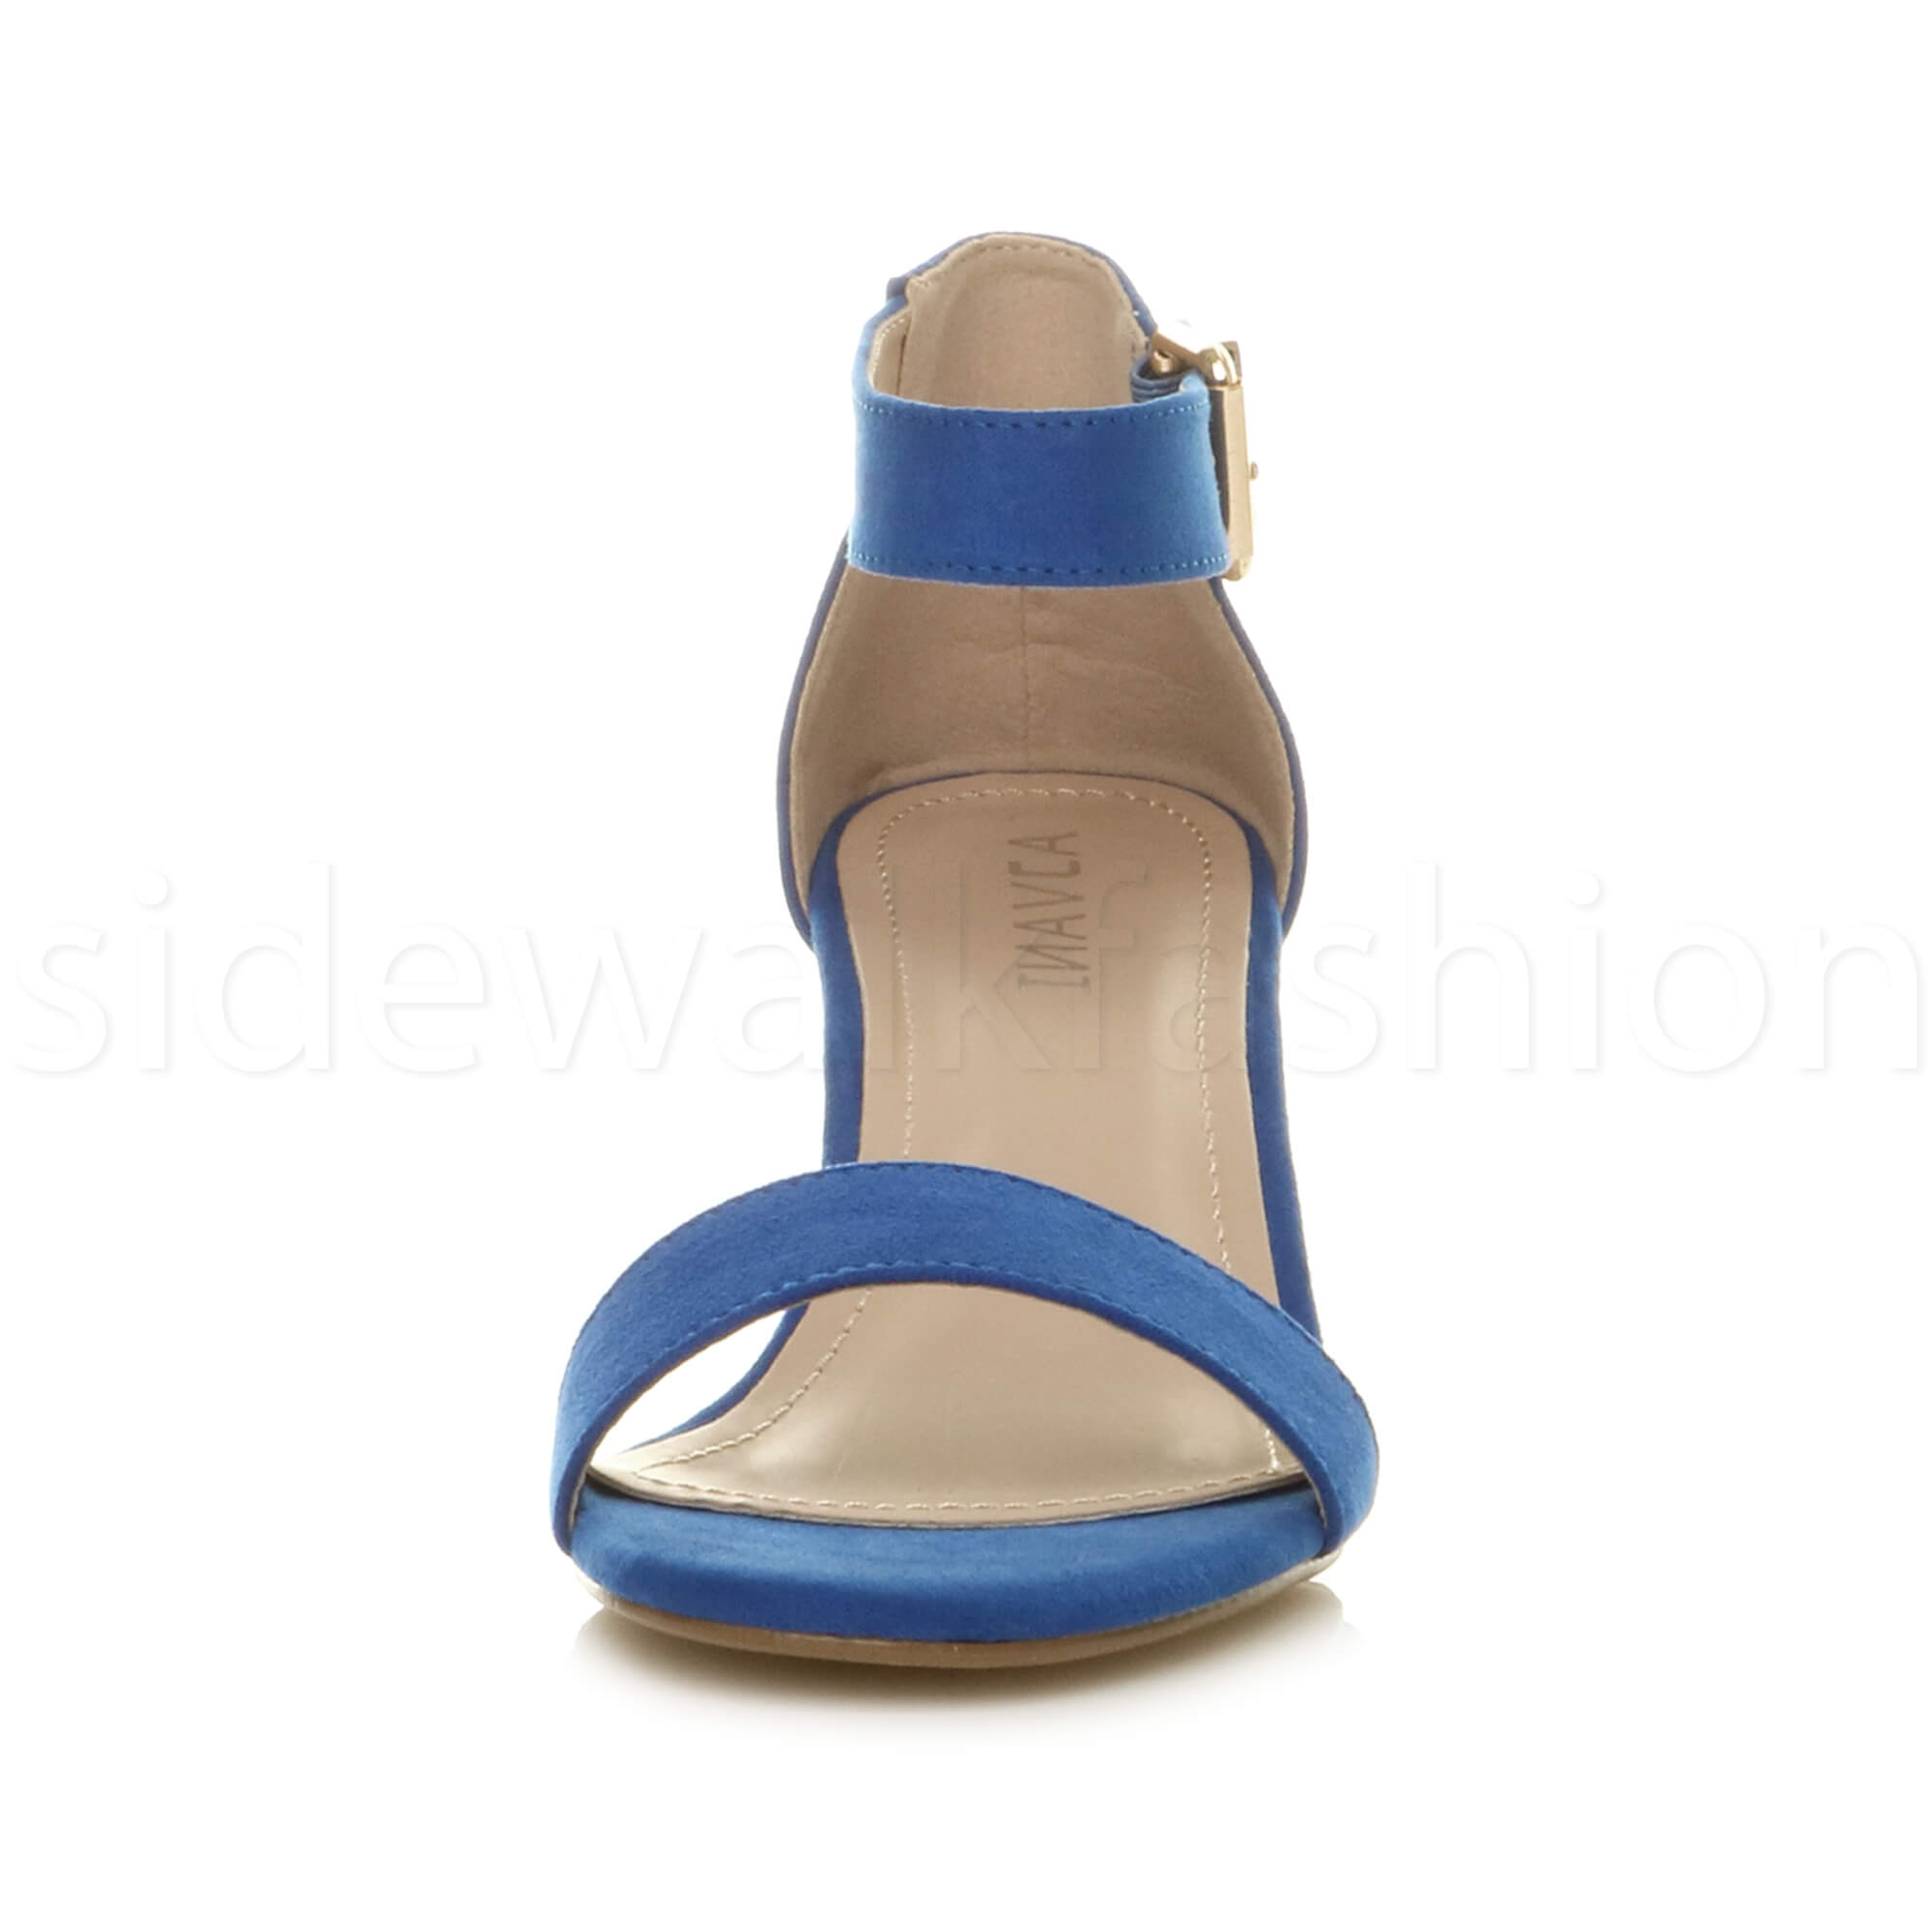 Womens-ladies-low-mid-heel-buckle-ankle-strap-peep-toe-party-strappy-sandal-size thumbnail 48